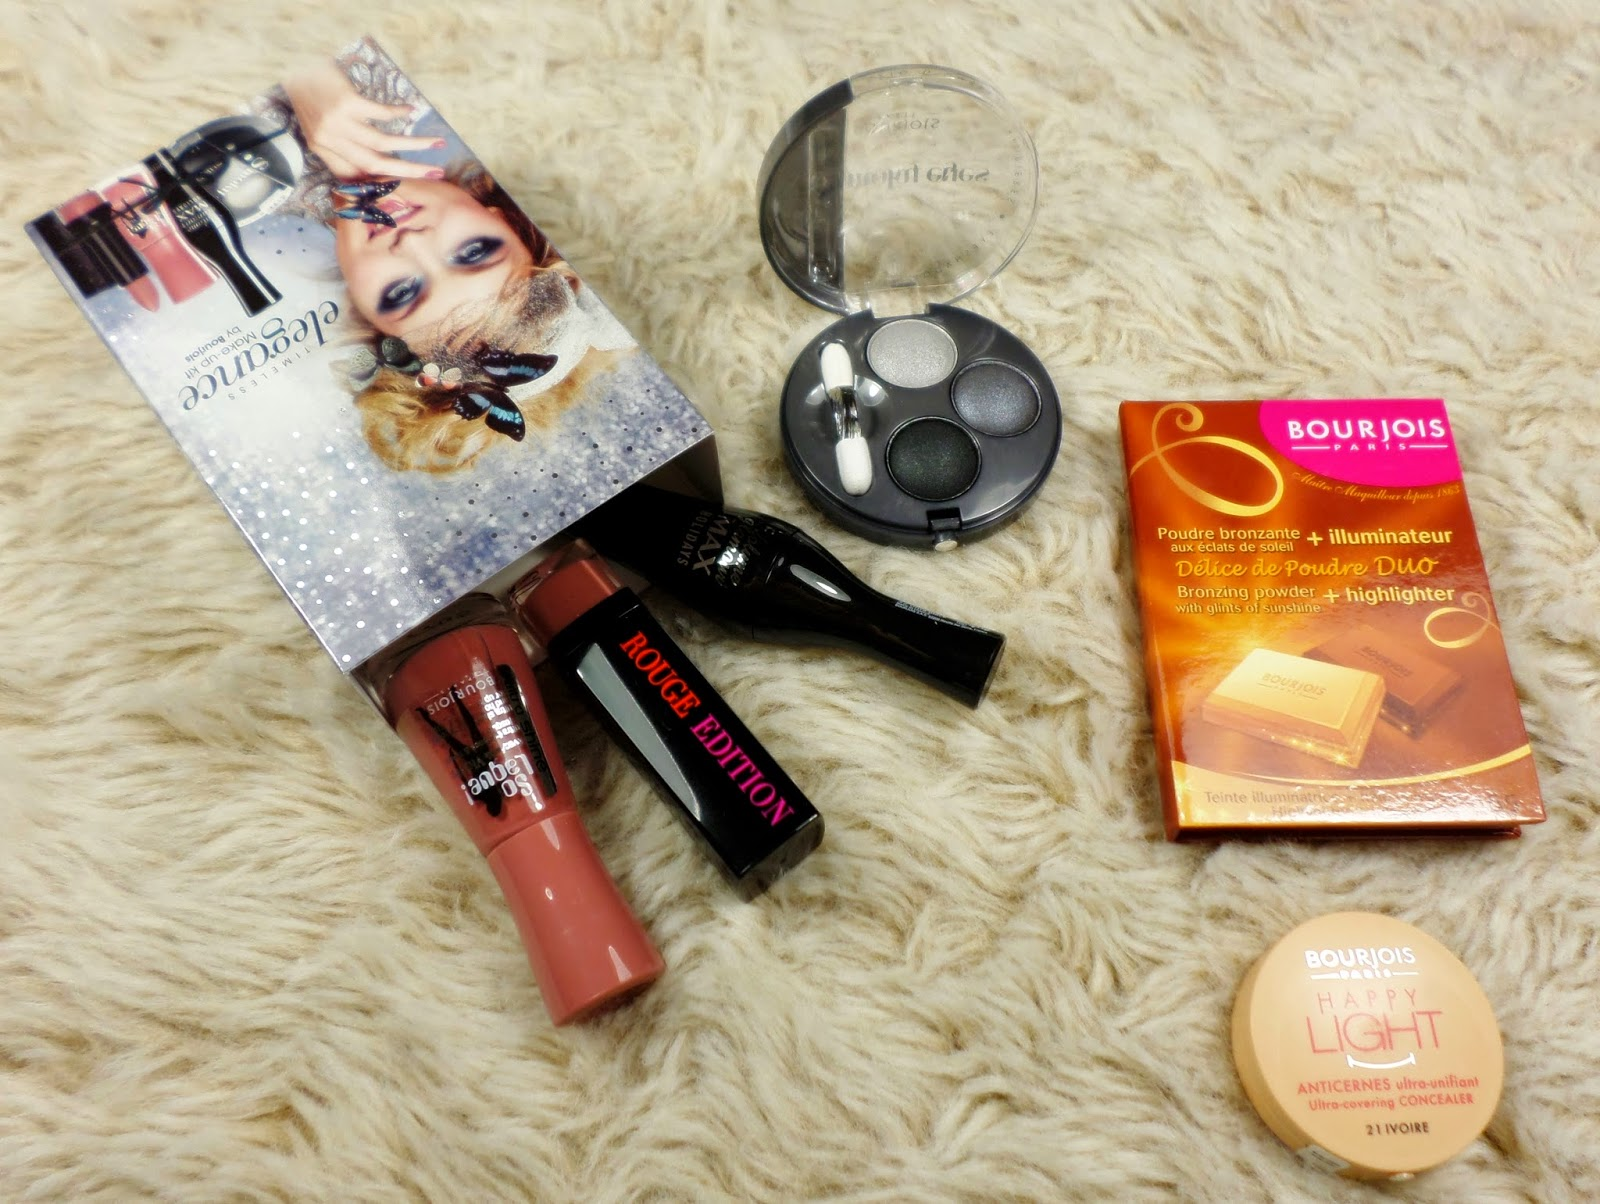 Bourjois Timeless Elegance Makeup Kit Boots Free Gift with Purchase 2014